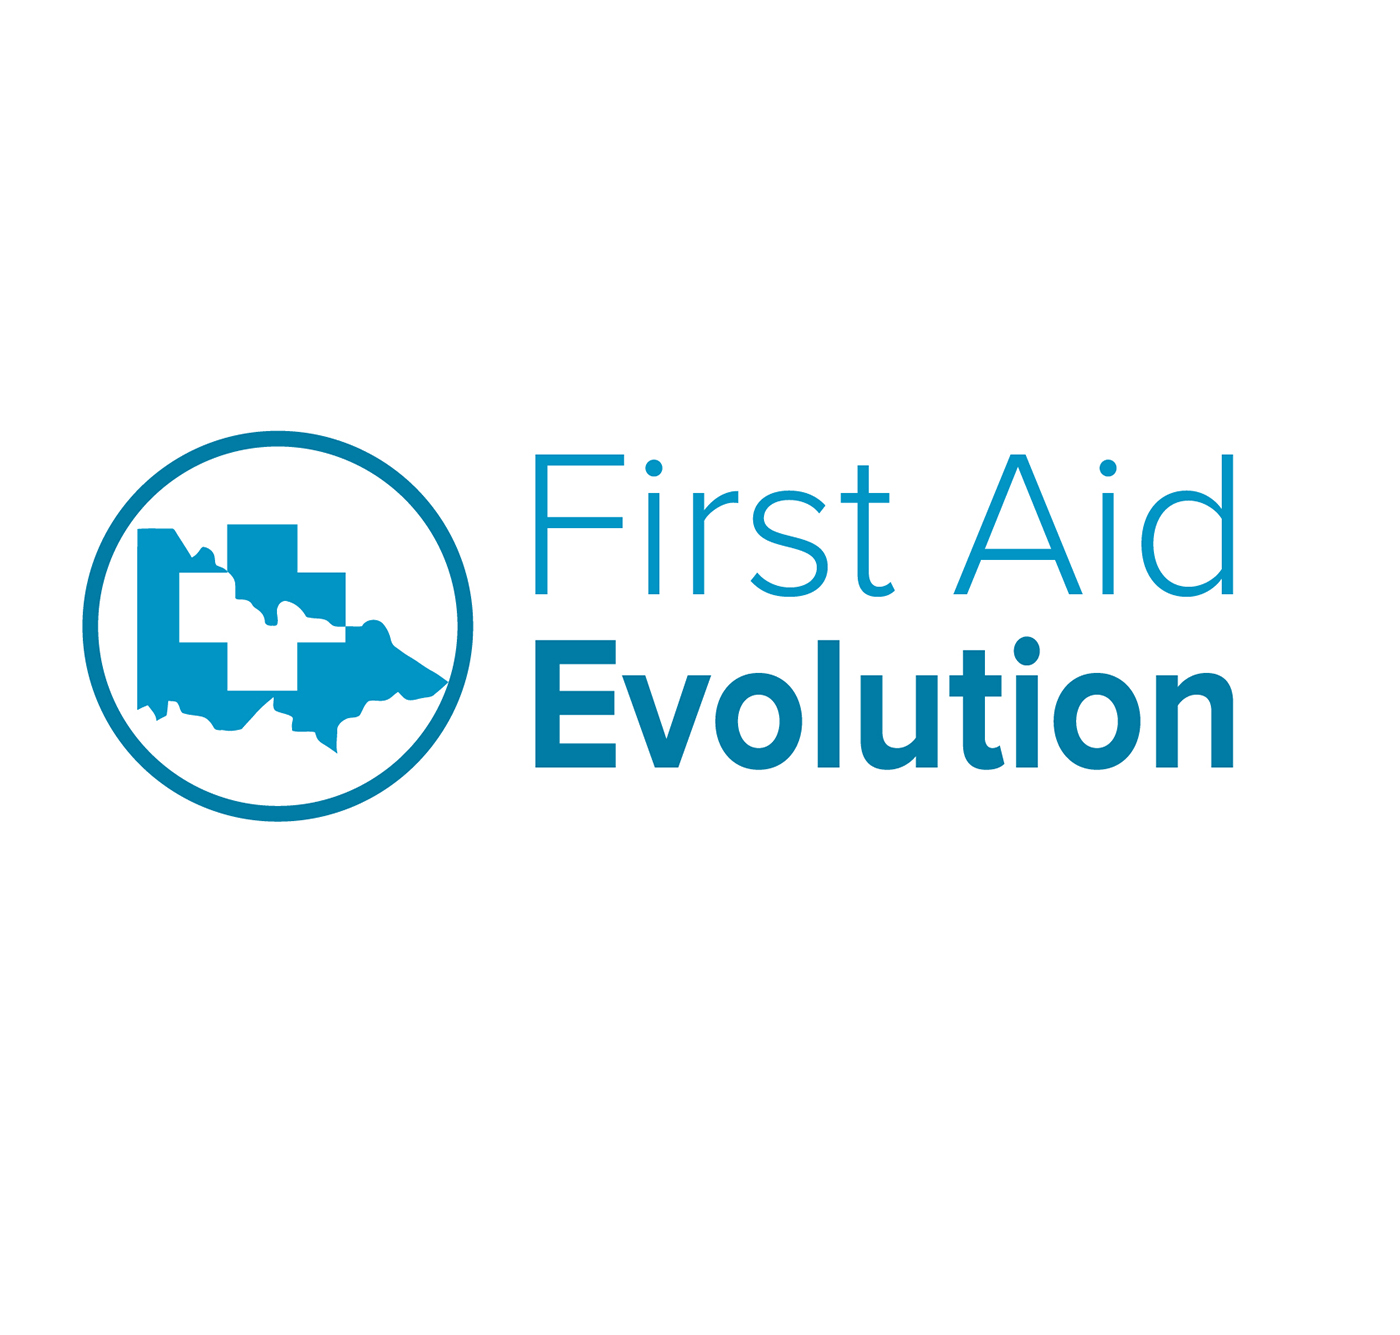 first aid logo design - photo #6